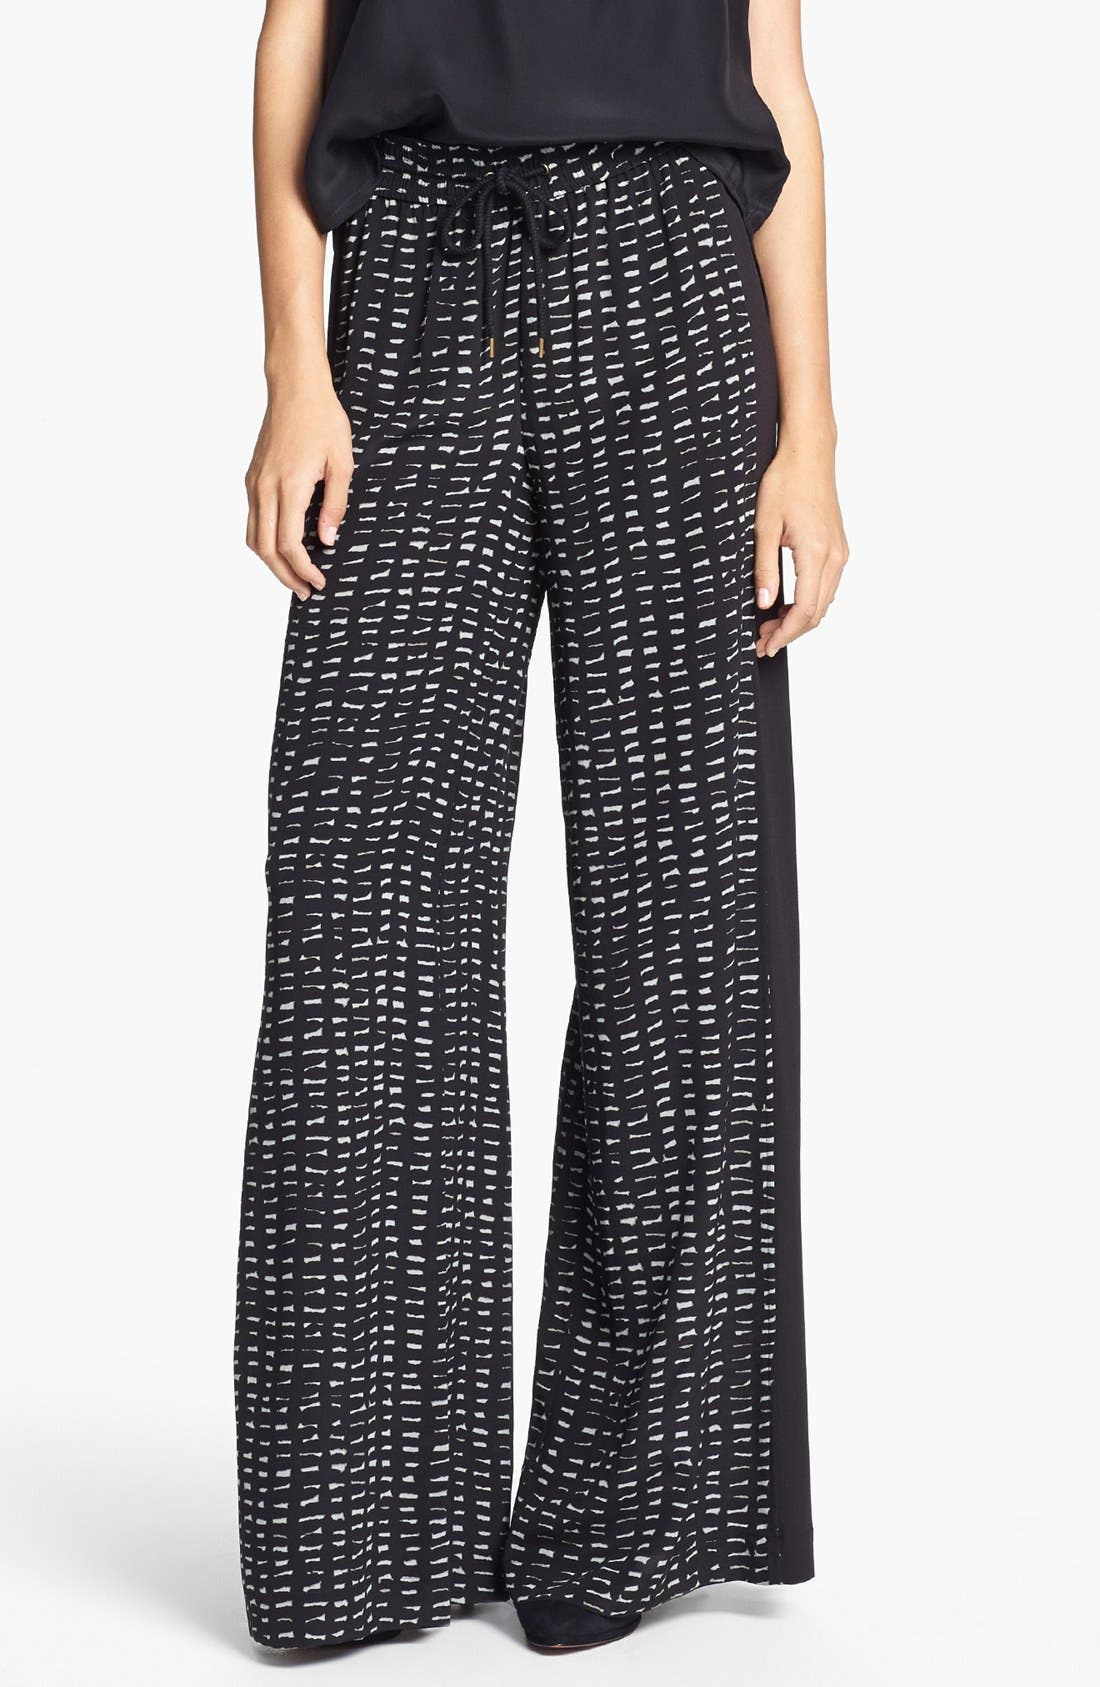 Main Image - Rachel Zoe 'Enzie' Drawstring Pants (Long)